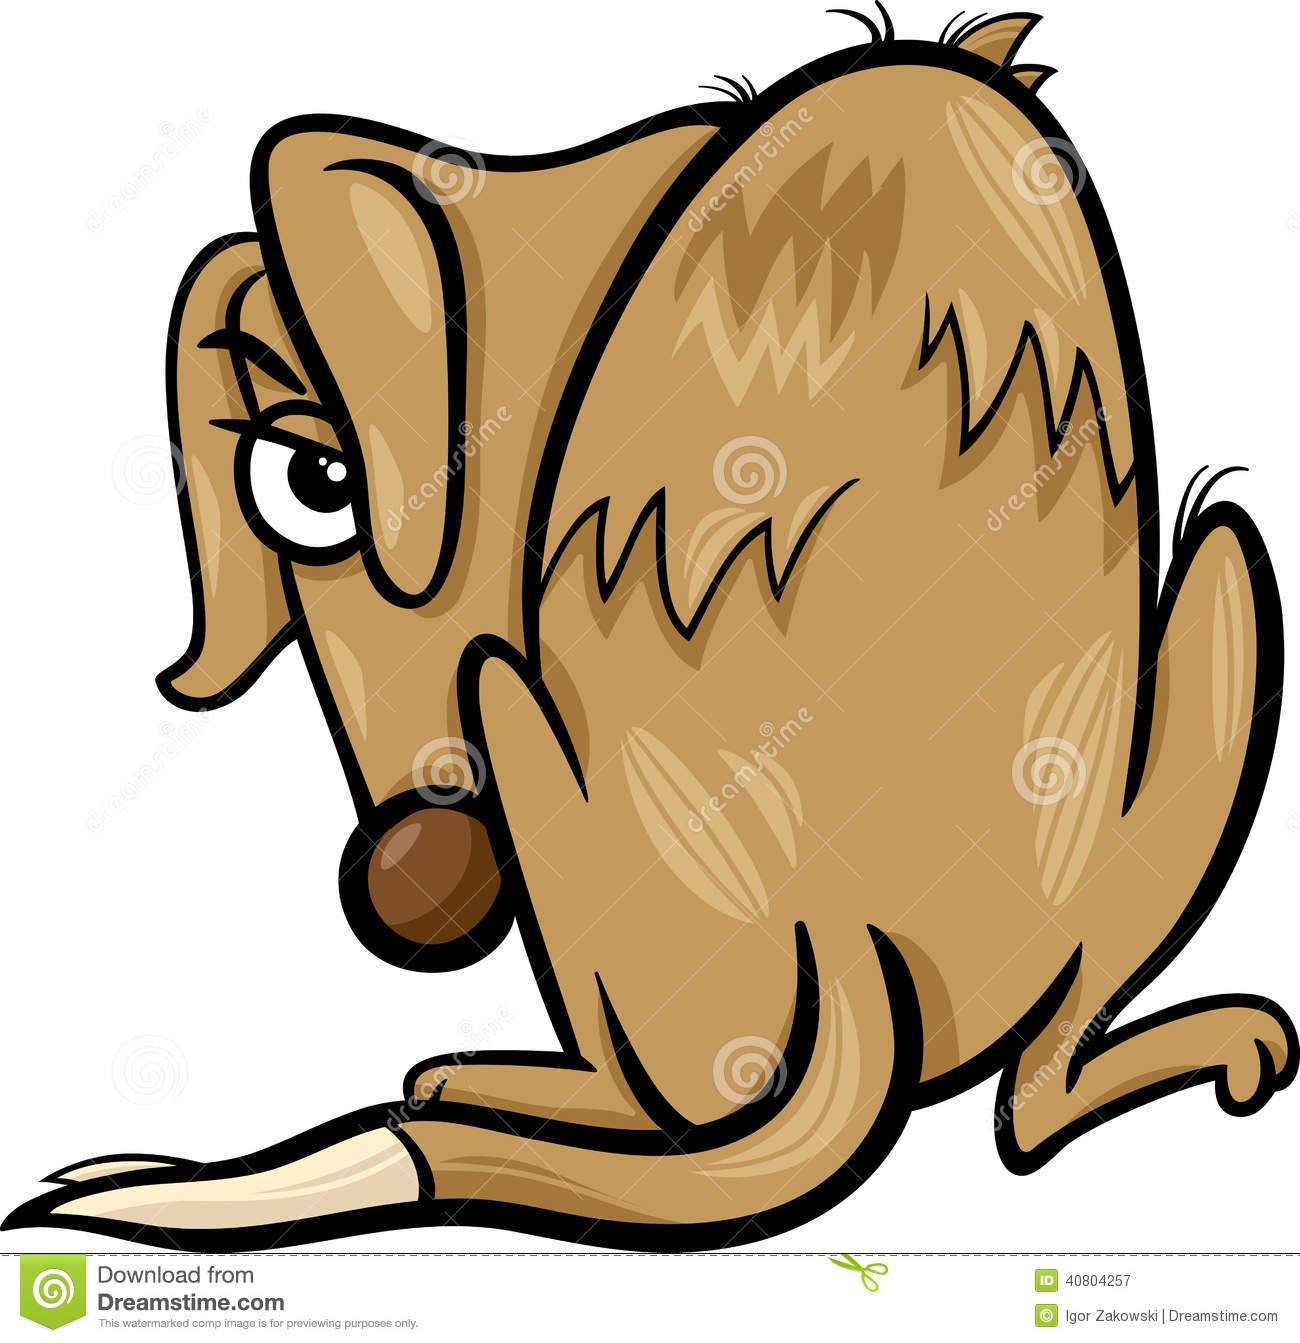 Poor Homeless Dog Cartoon Illustration Stock Vector.